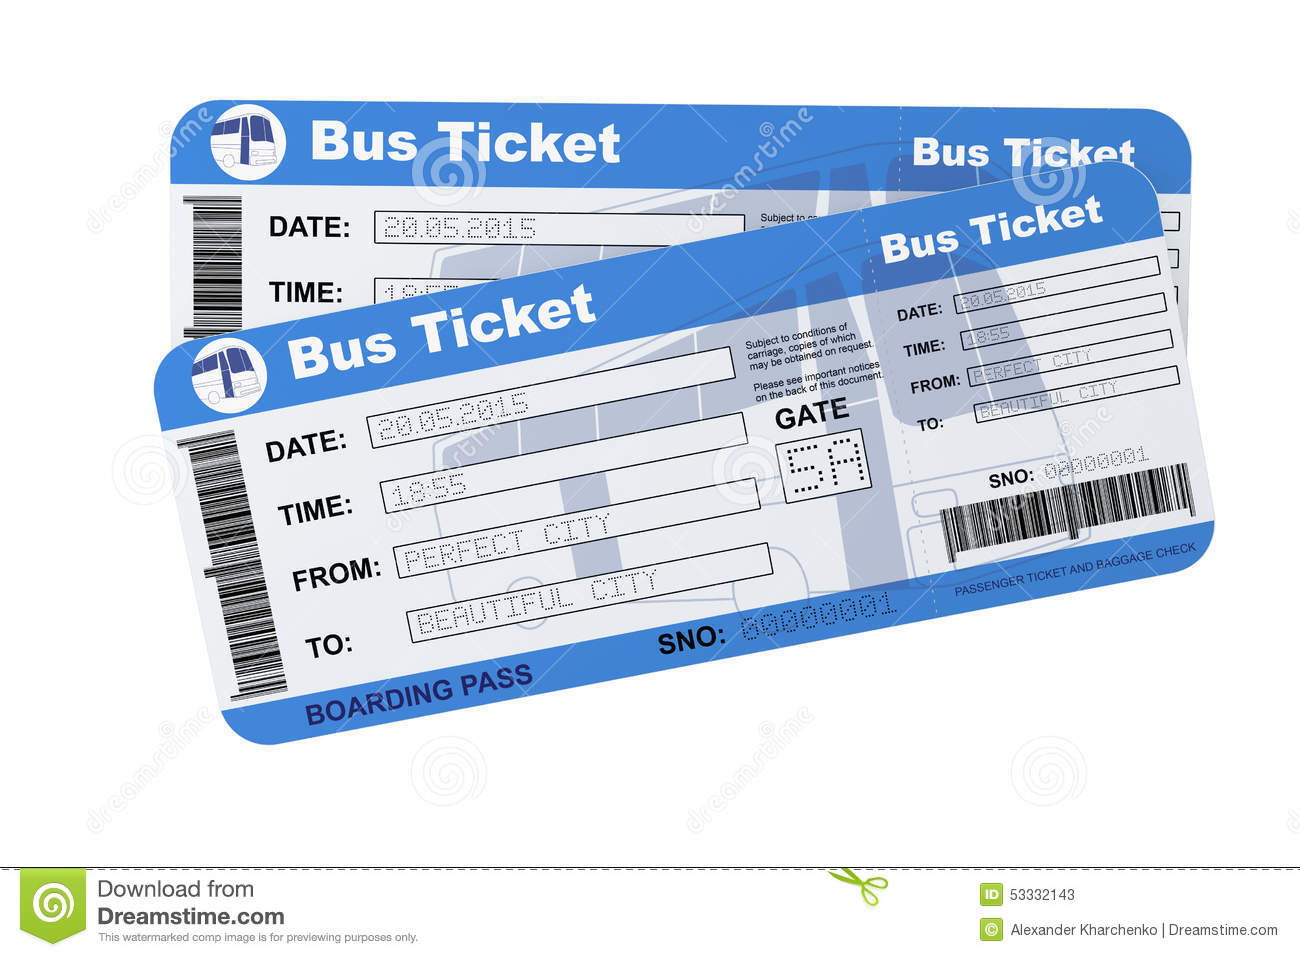 Book bus ticket to Florence from Columbia online at low price. Compare bus schedules, operators for traveling from Columbia to Florence. Find bus tickets deals, coupons, discounts with no booking fees.